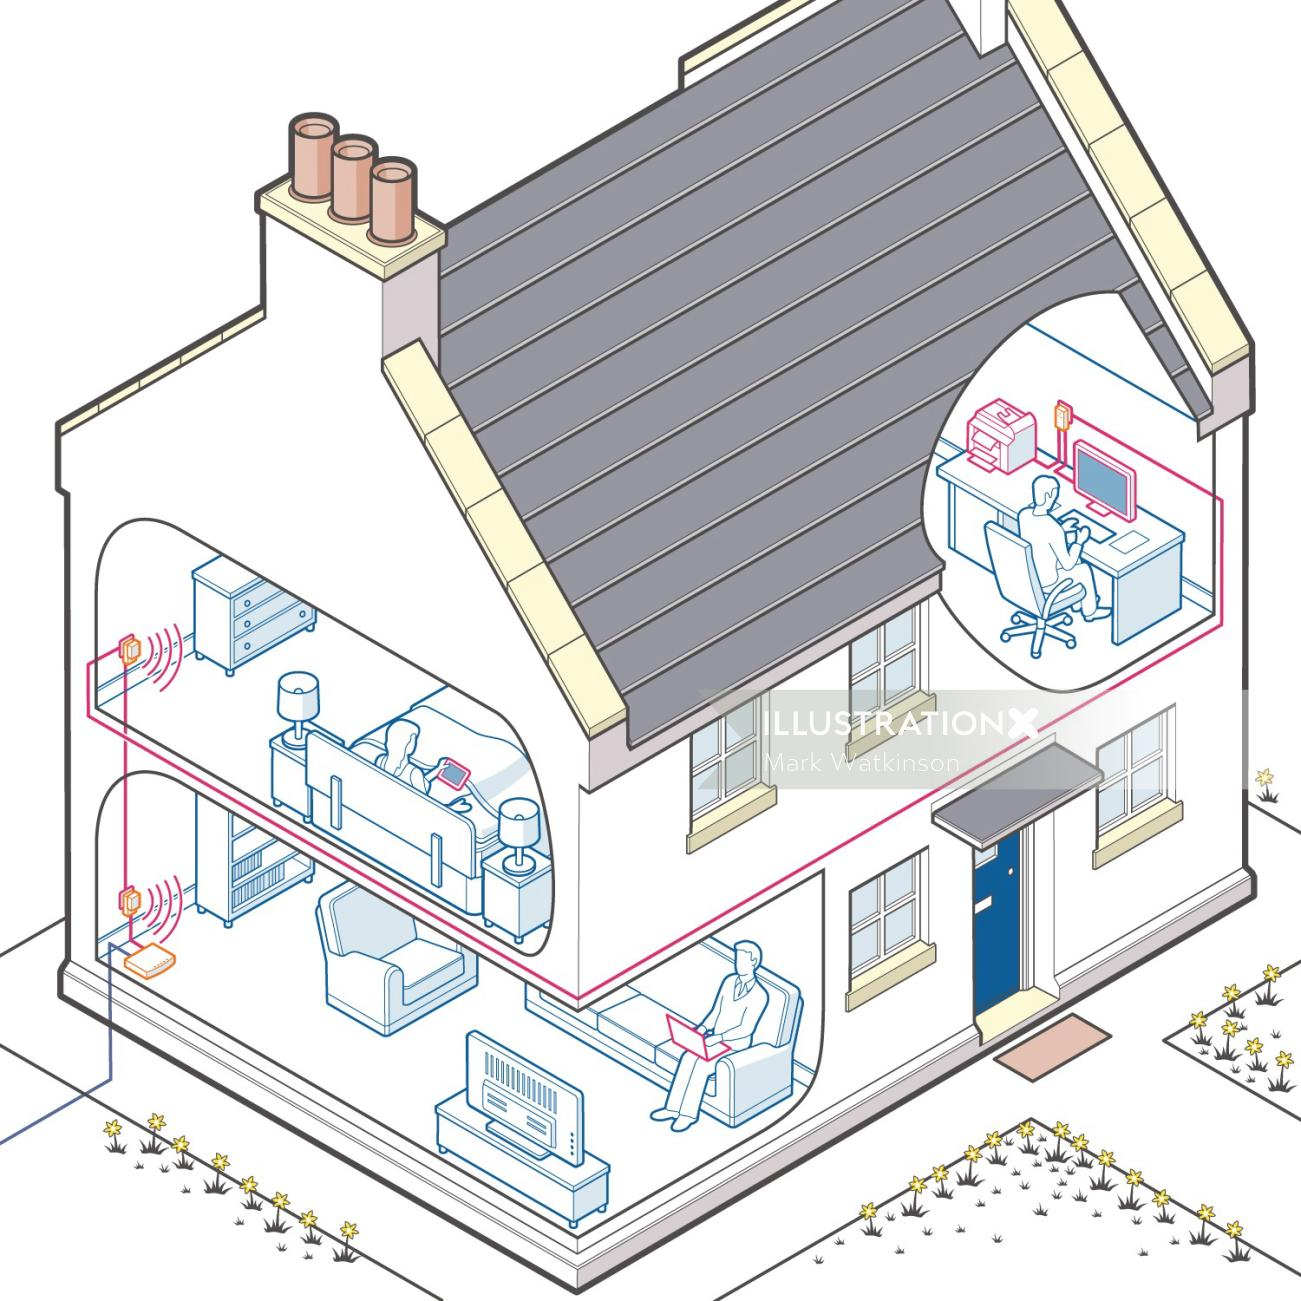 Architecture design of home internet connection